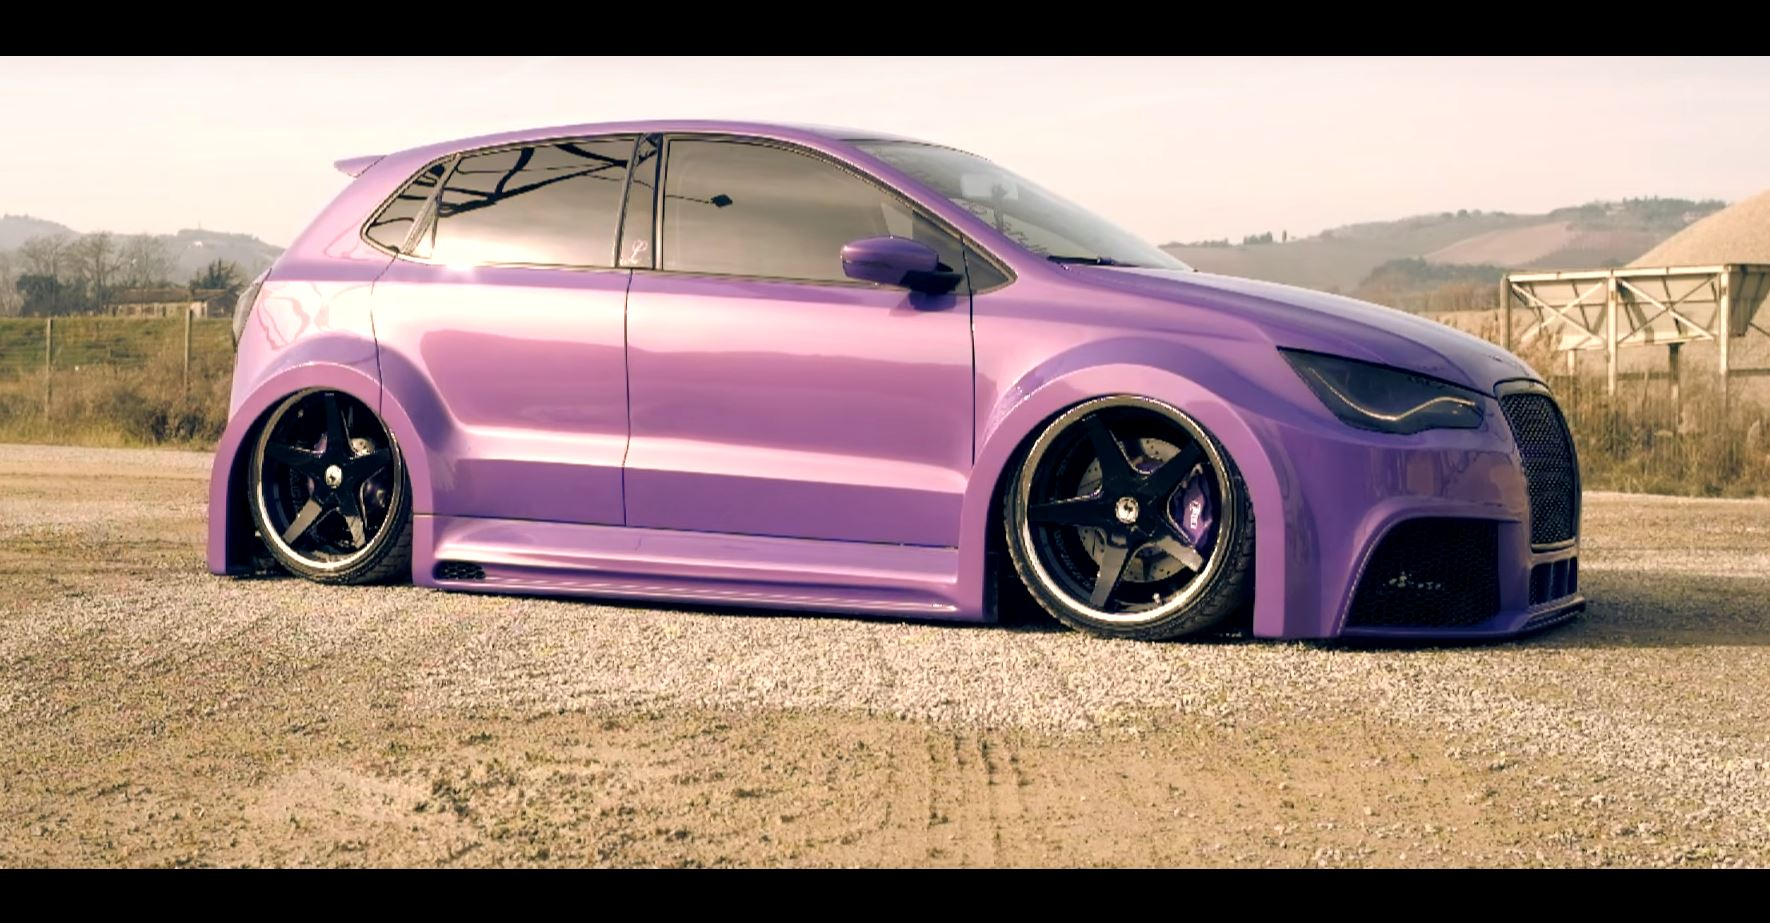 purple polo 6r with audi a1 kit and lambo doors looks. Black Bedroom Furniture Sets. Home Design Ideas